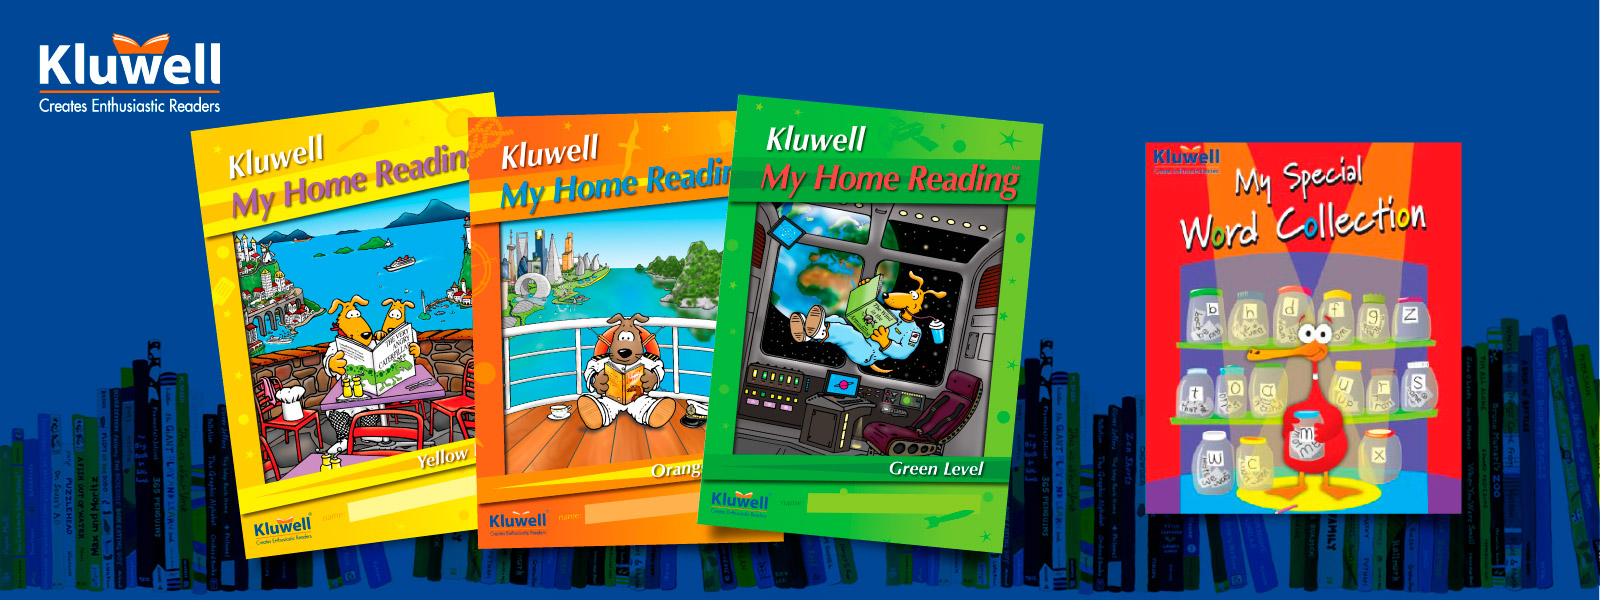 books-hero-image-kluwell-1600×600